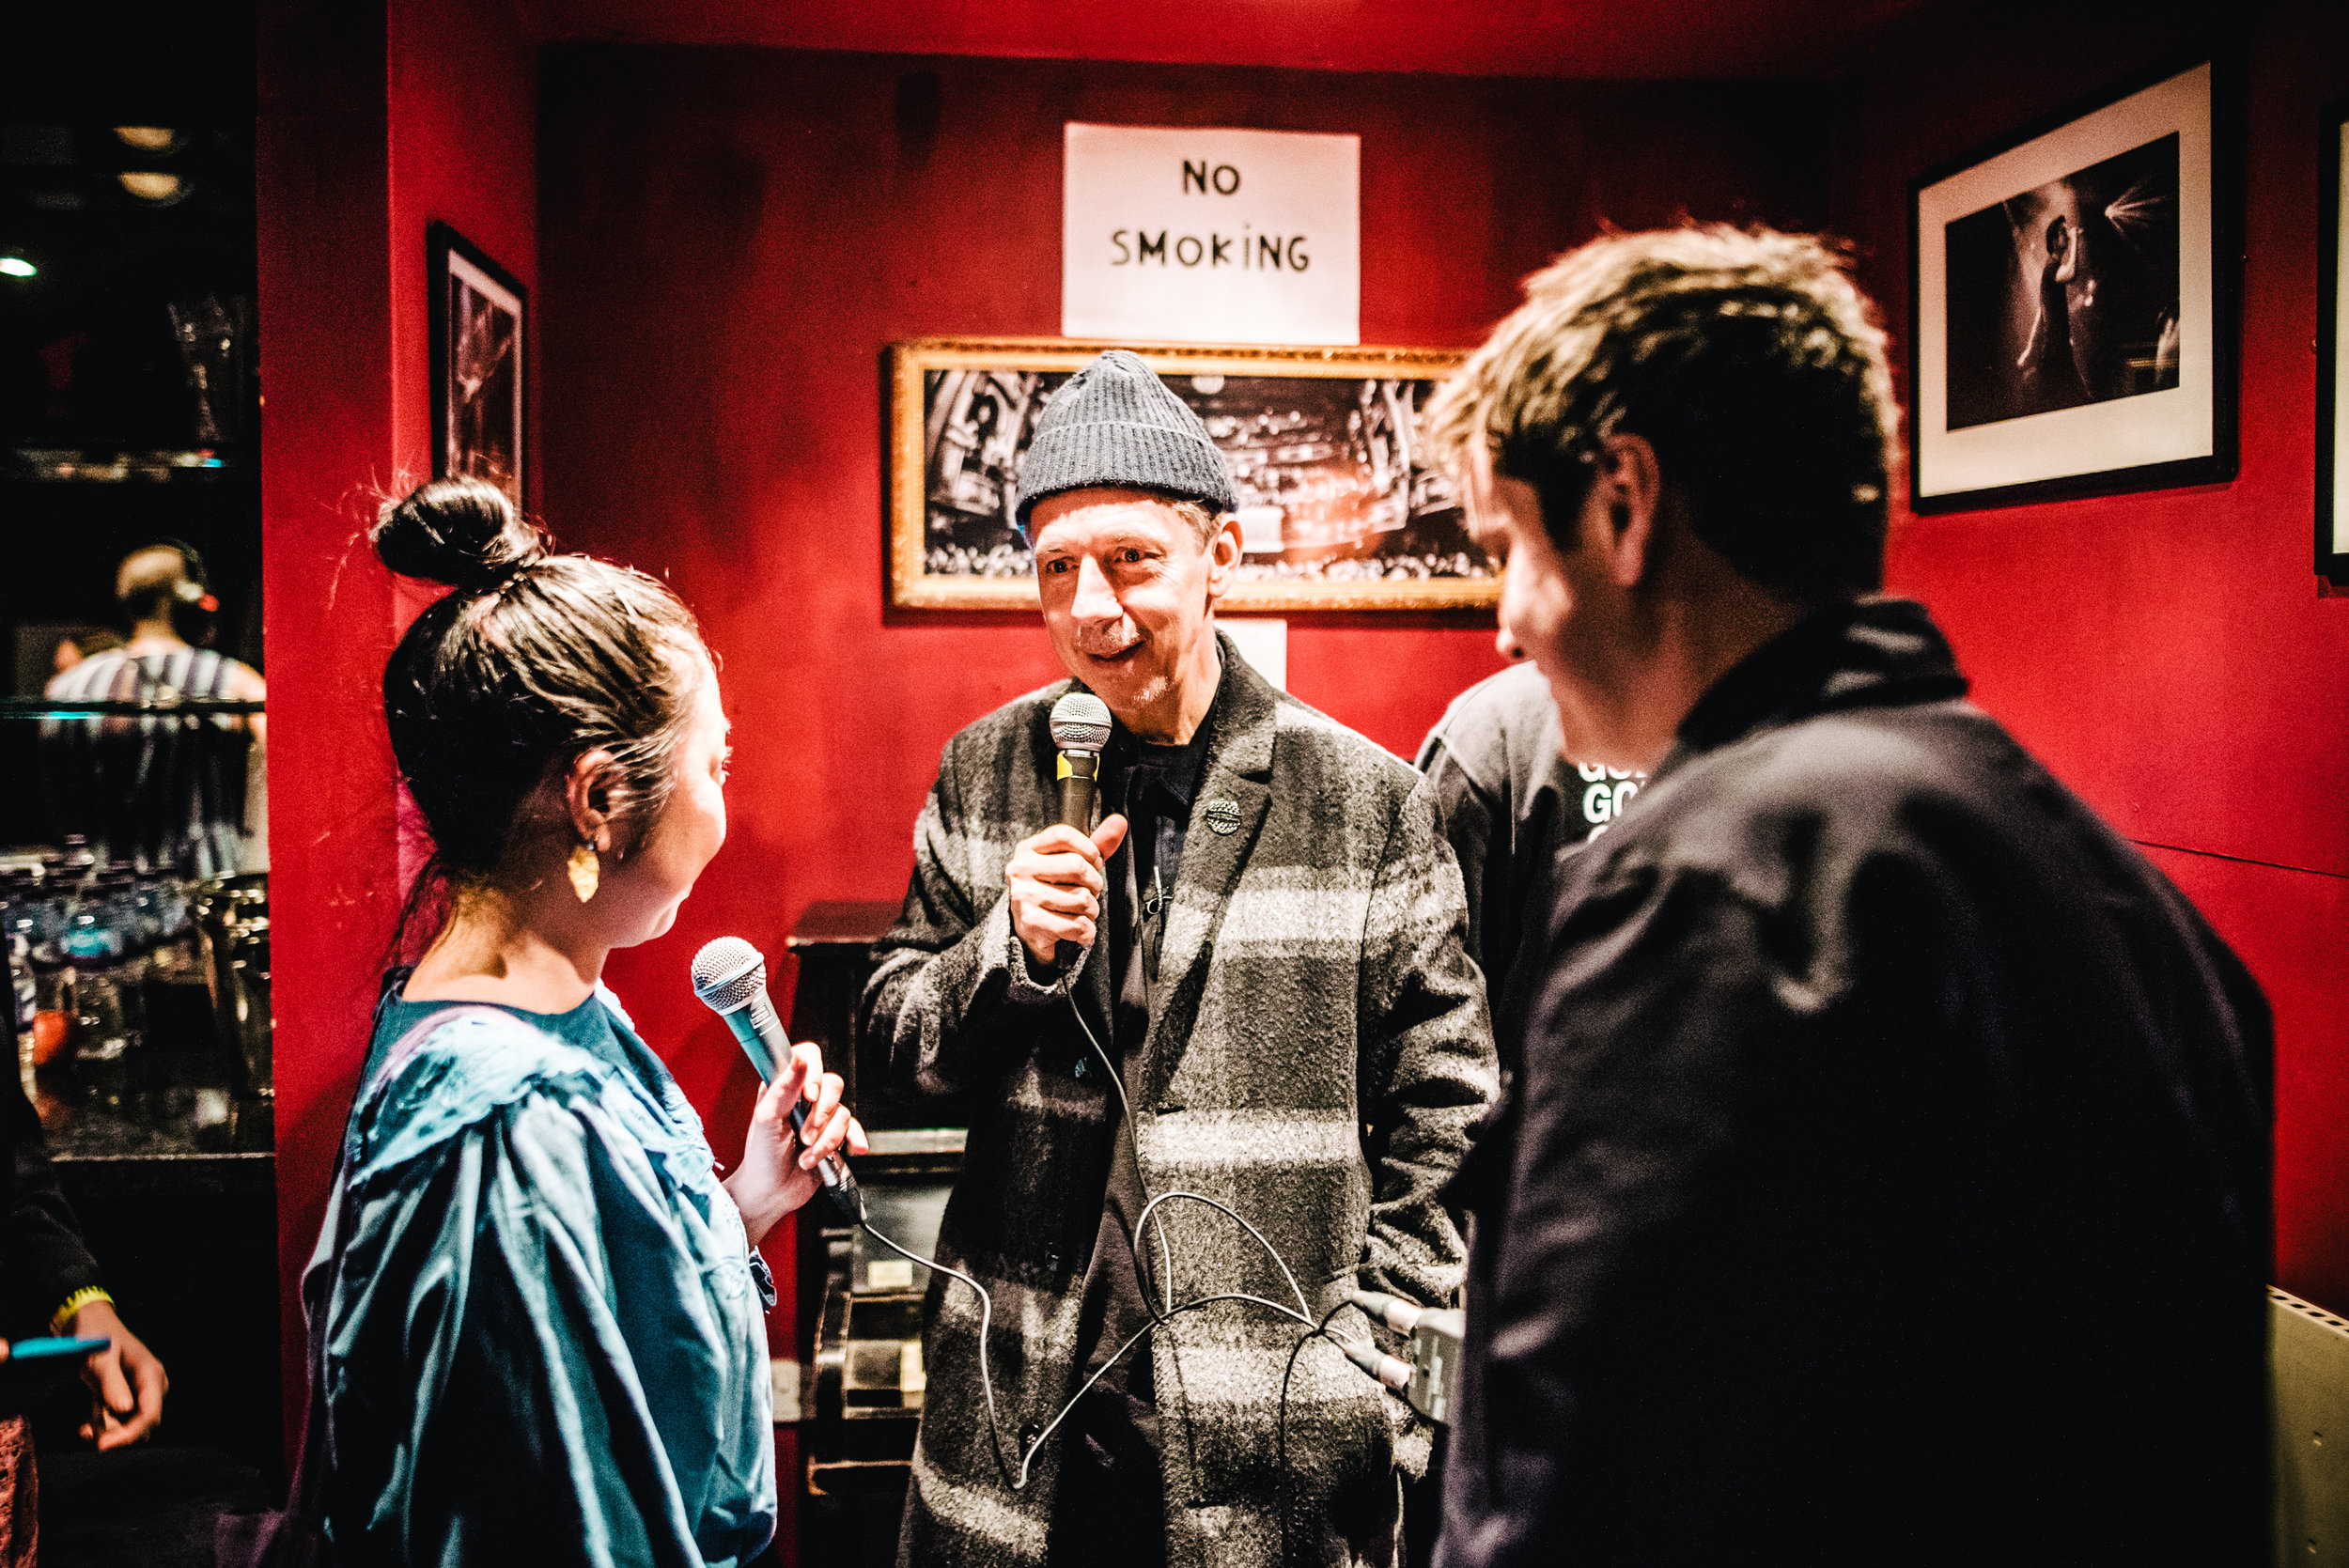 Copy of Gilles_Peterson_Worldwide_Awards_2019_January_2019_Rob_Jones_@hirobjones_ROB_1789.jpg